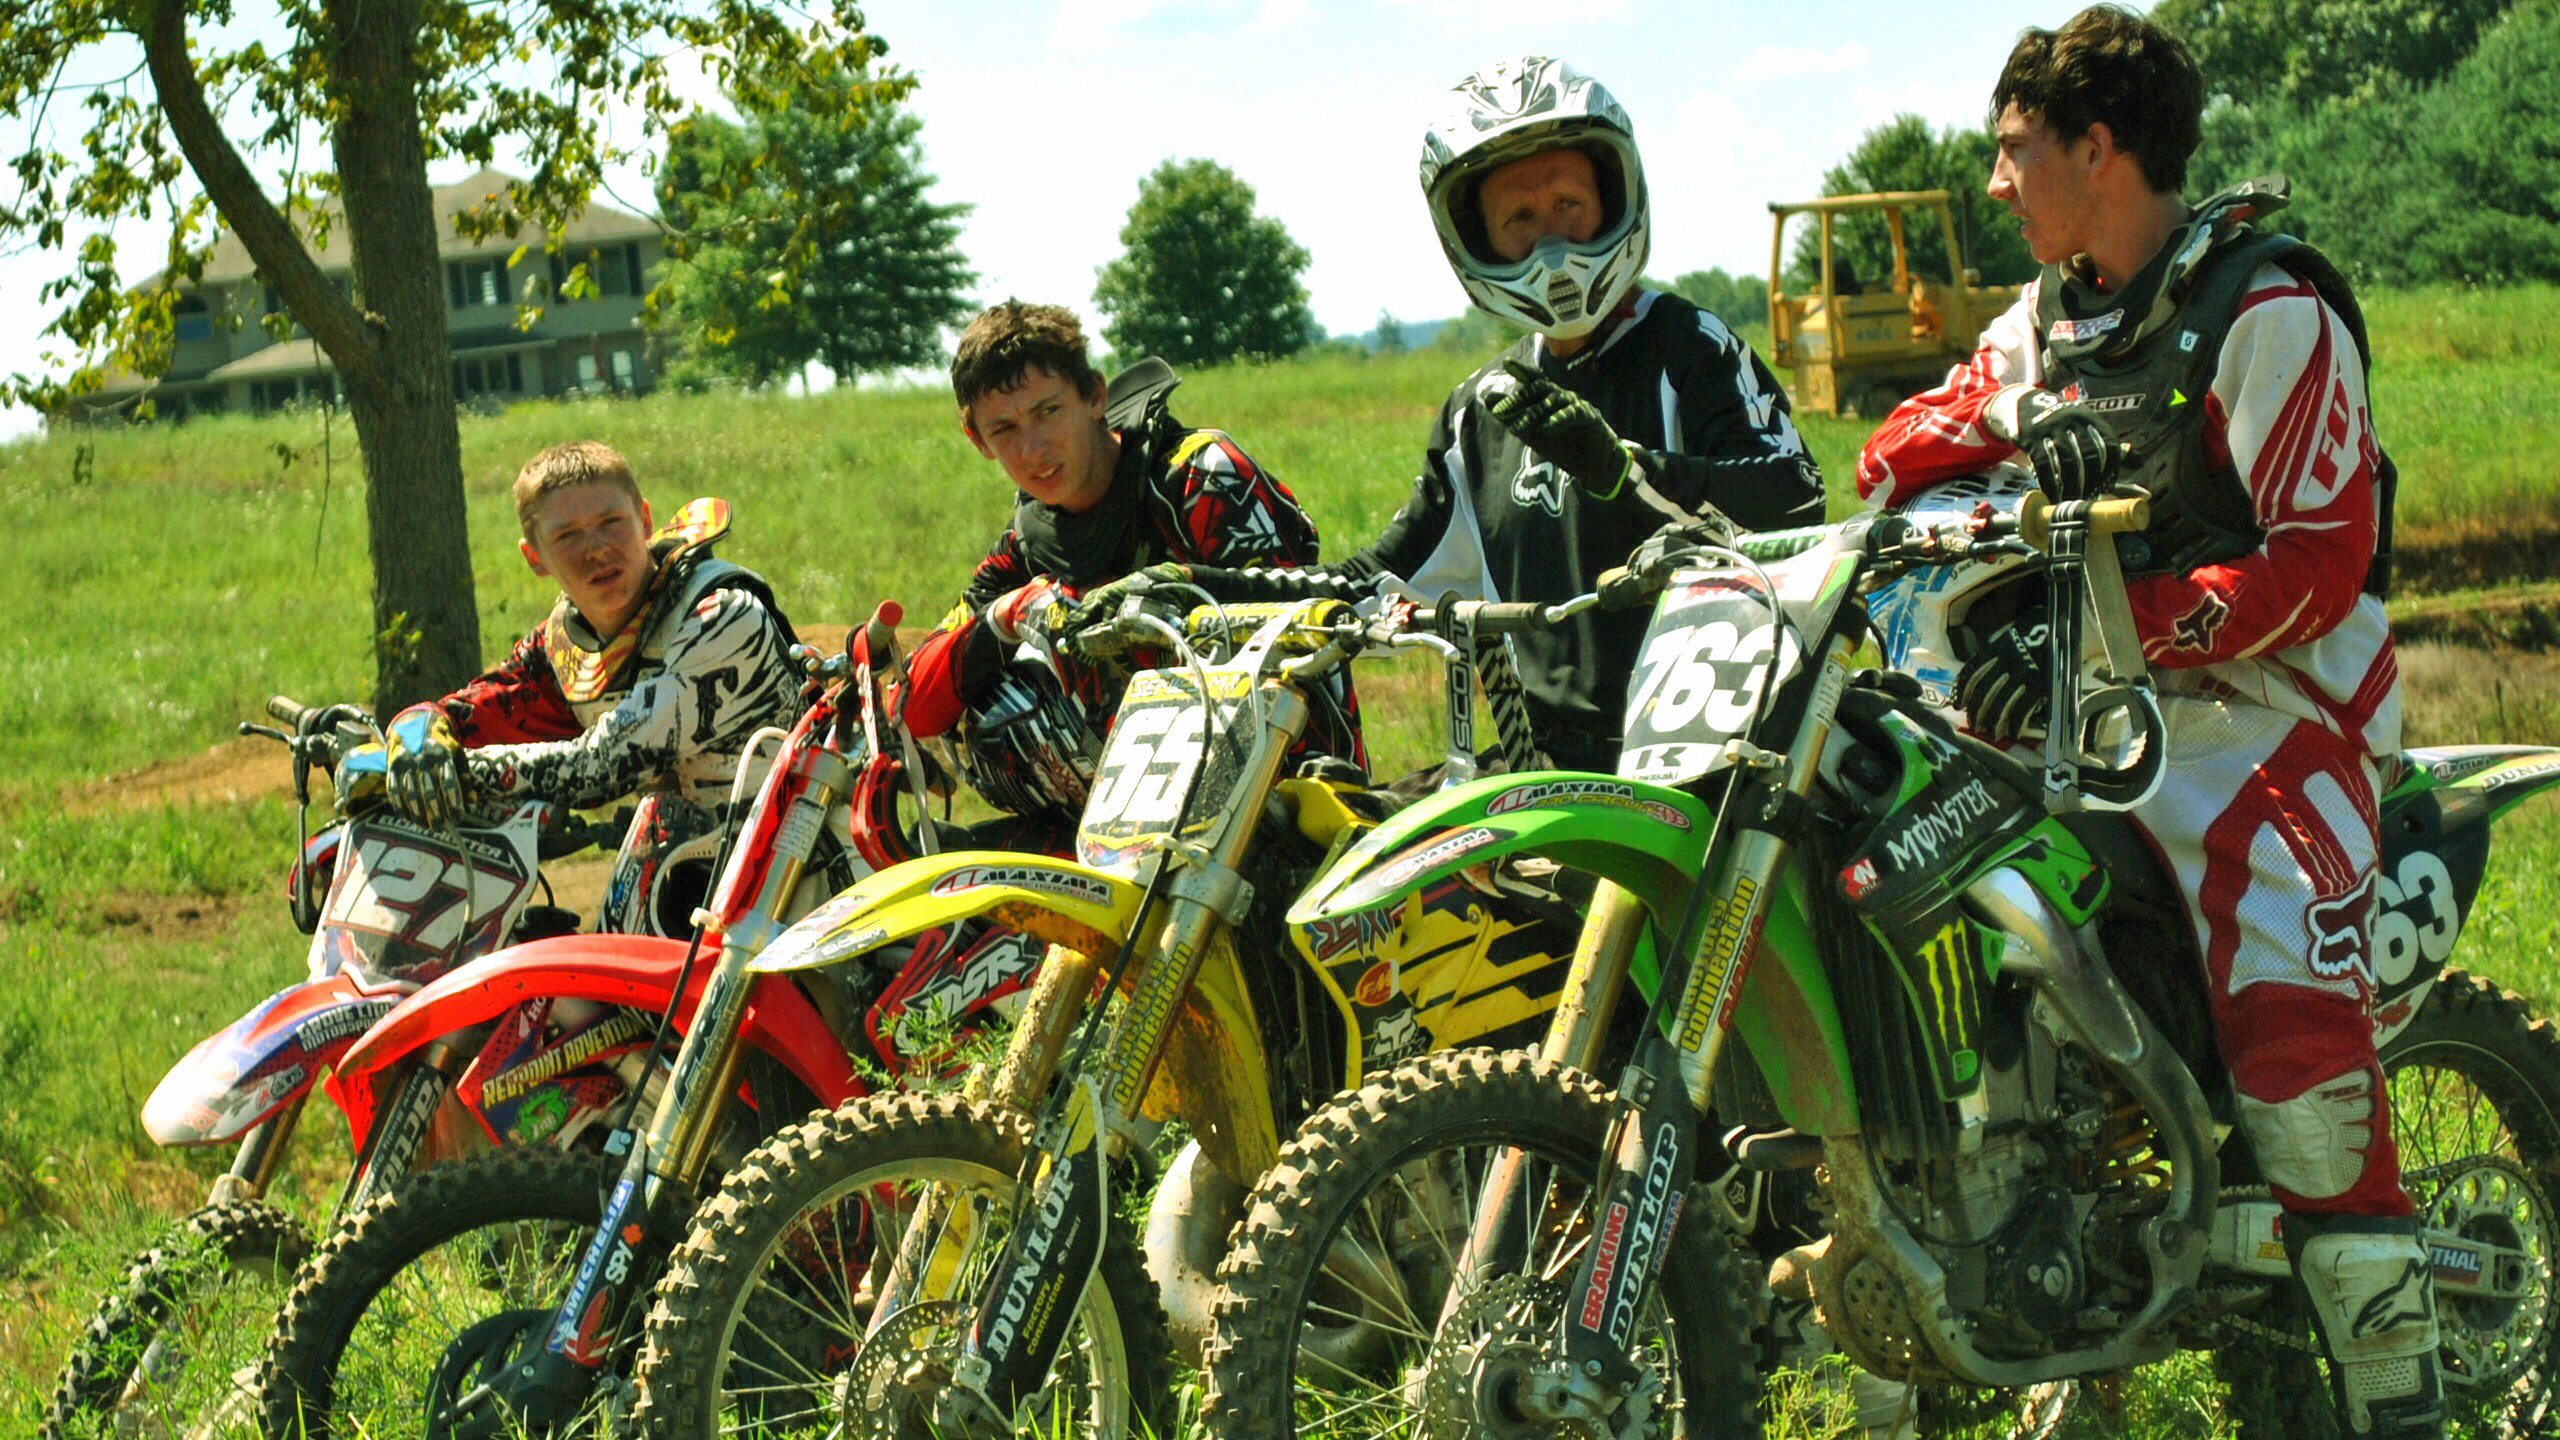 Group Motocross training and coaching